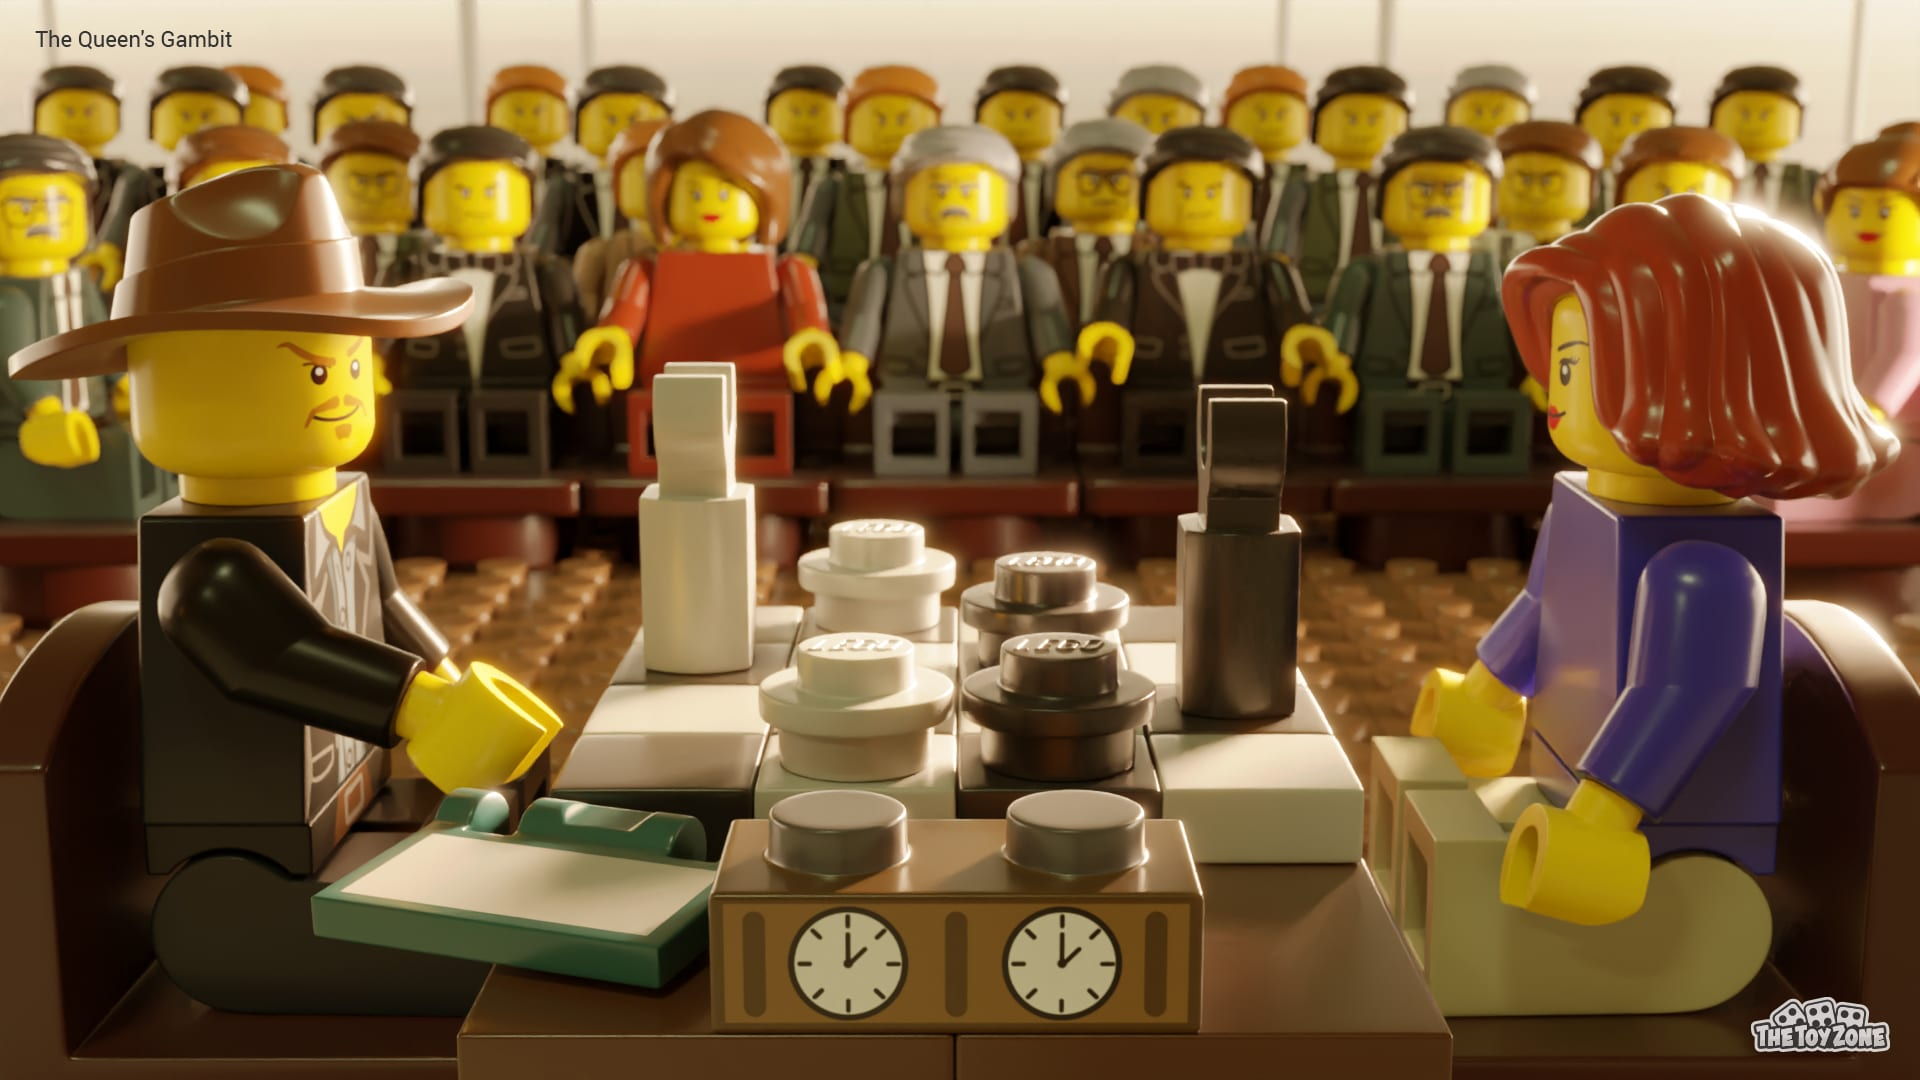 The Crown, Bridgerton, and other Netflix series get recreated in LEGO 22